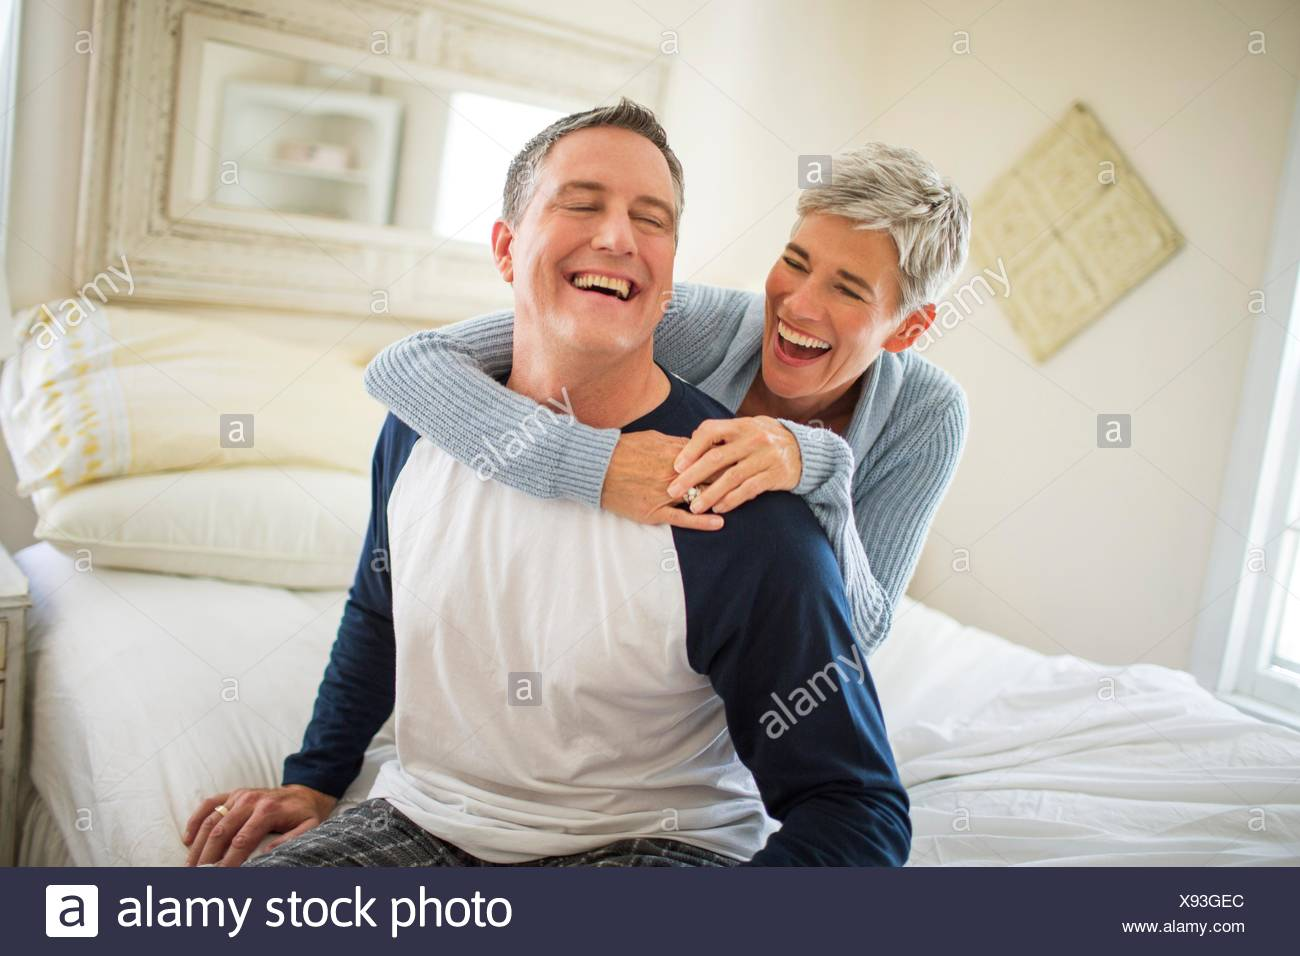 Mature couple laughing and fooling around on bed - Stock Image